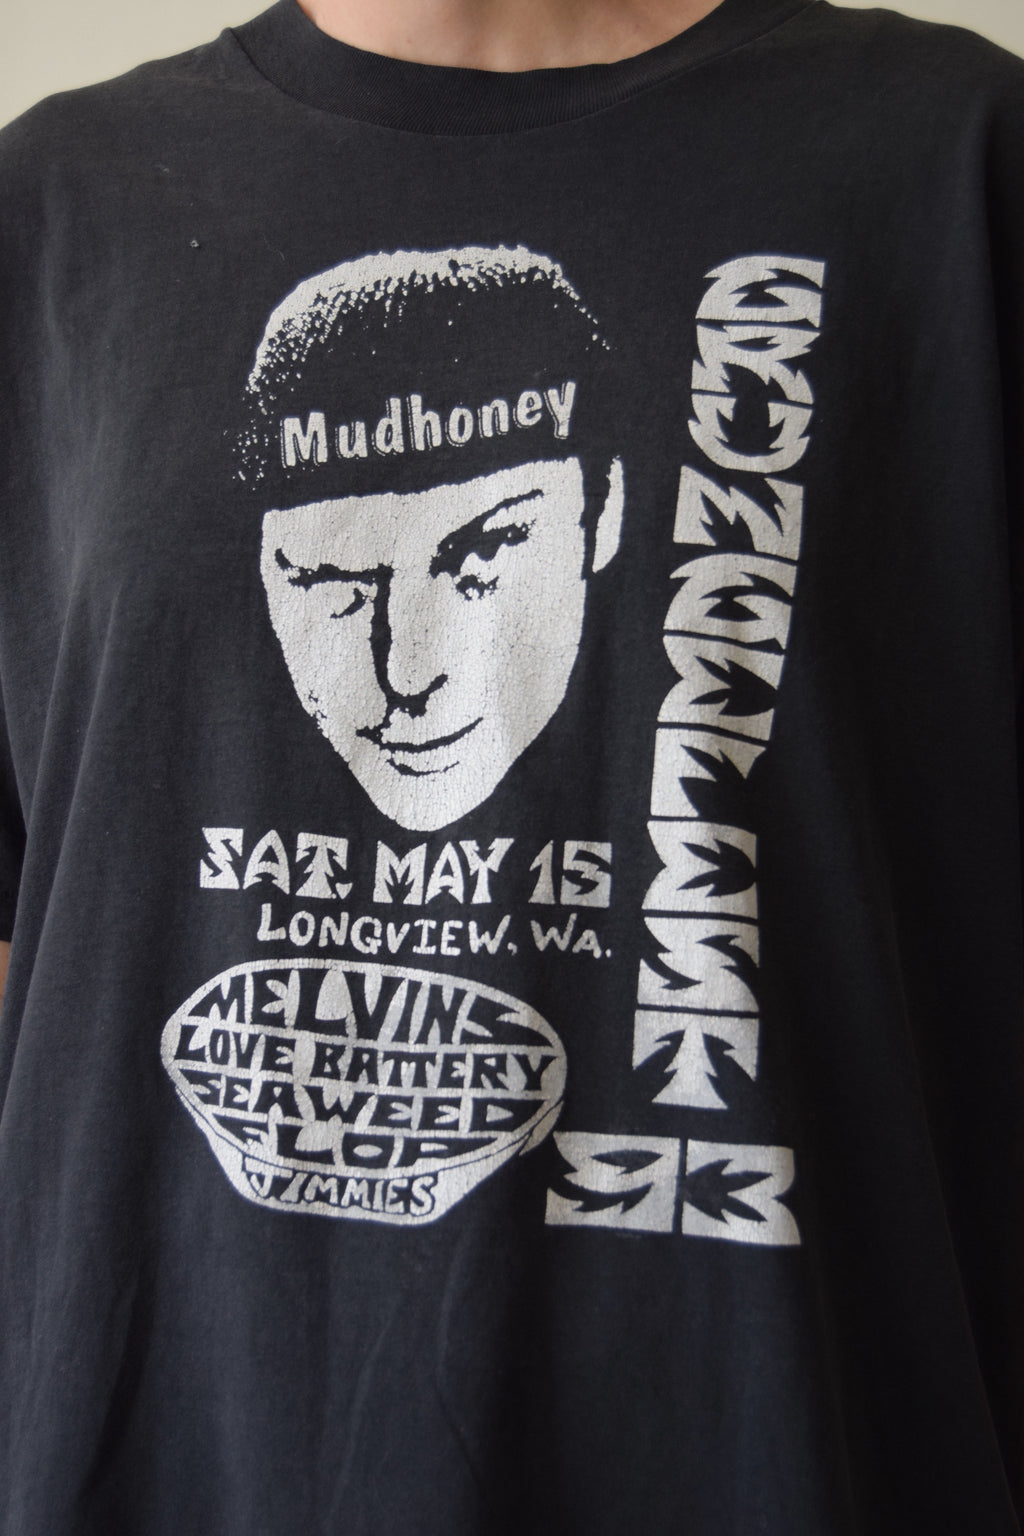 Vintage Mudhoney Melvins Grunge Fest 93 T Shirt FREE SHIPPING TO THE U.S.